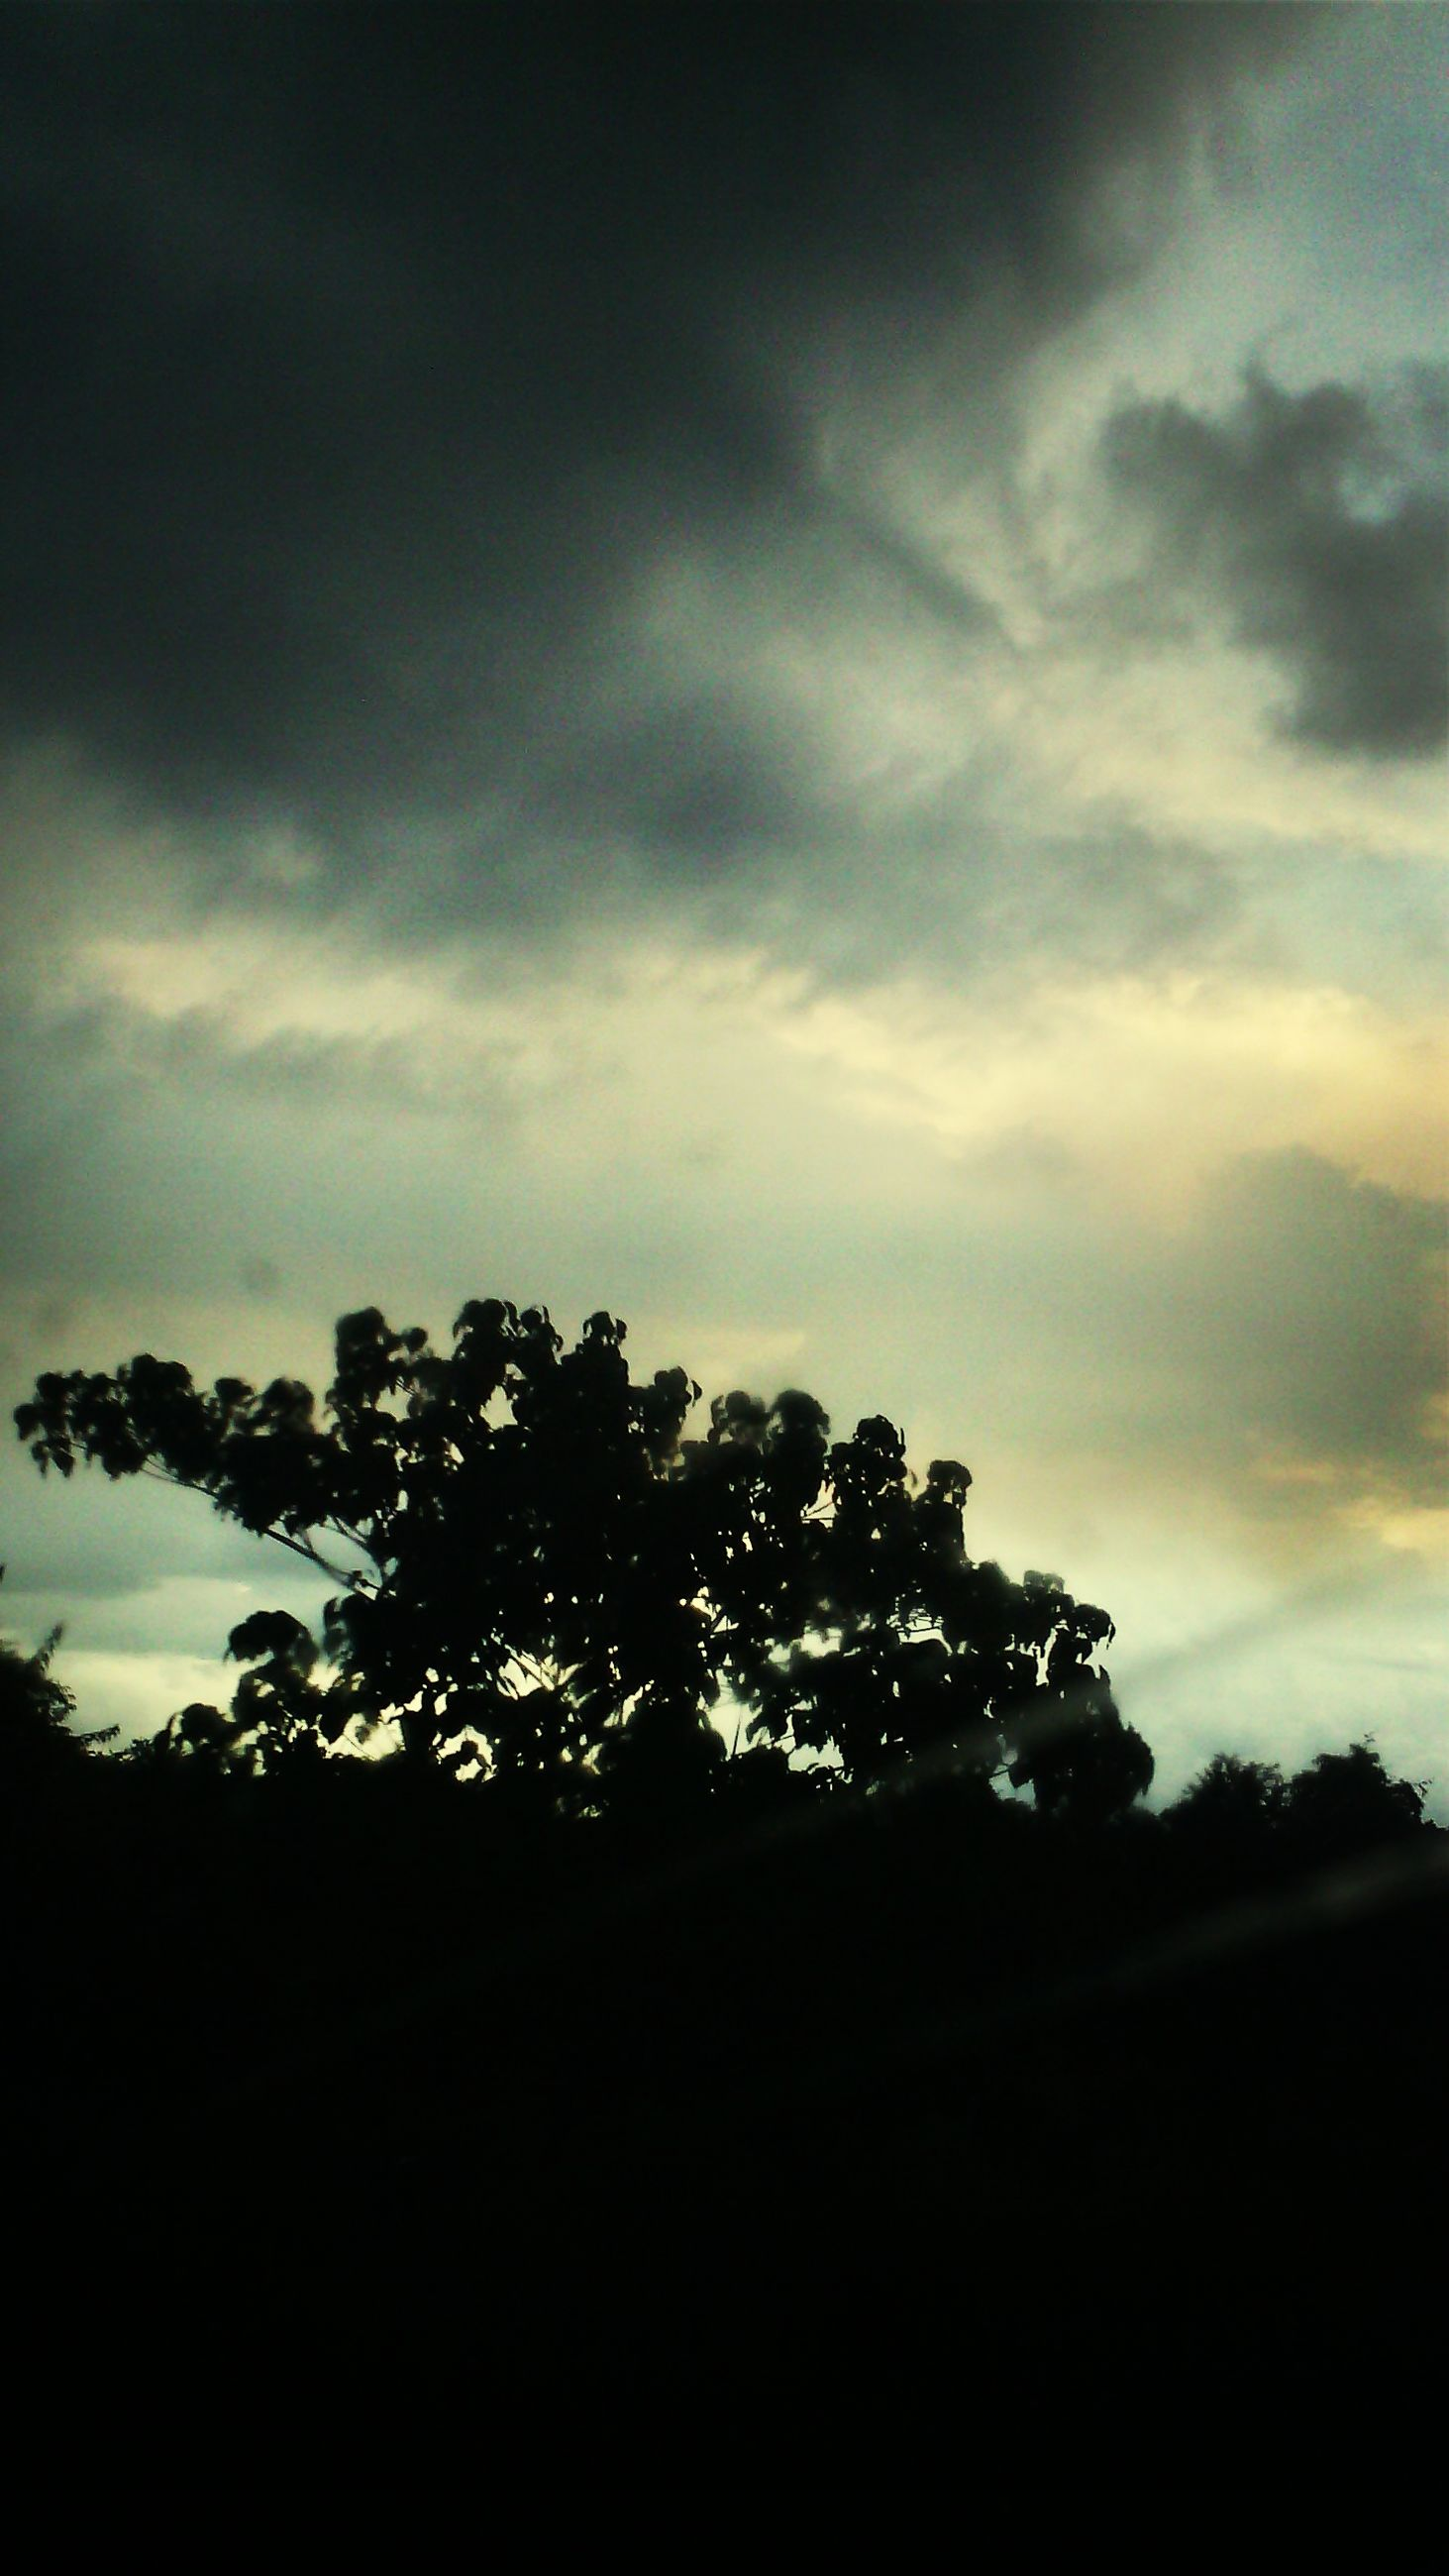 sky, silhouette, tree, cloud - sky, cloudy, low angle view, tranquility, nature, cloud, beauty in nature, growth, tranquil scene, scenics, dusk, sunset, outdoors, no people, overcast, dark, weather